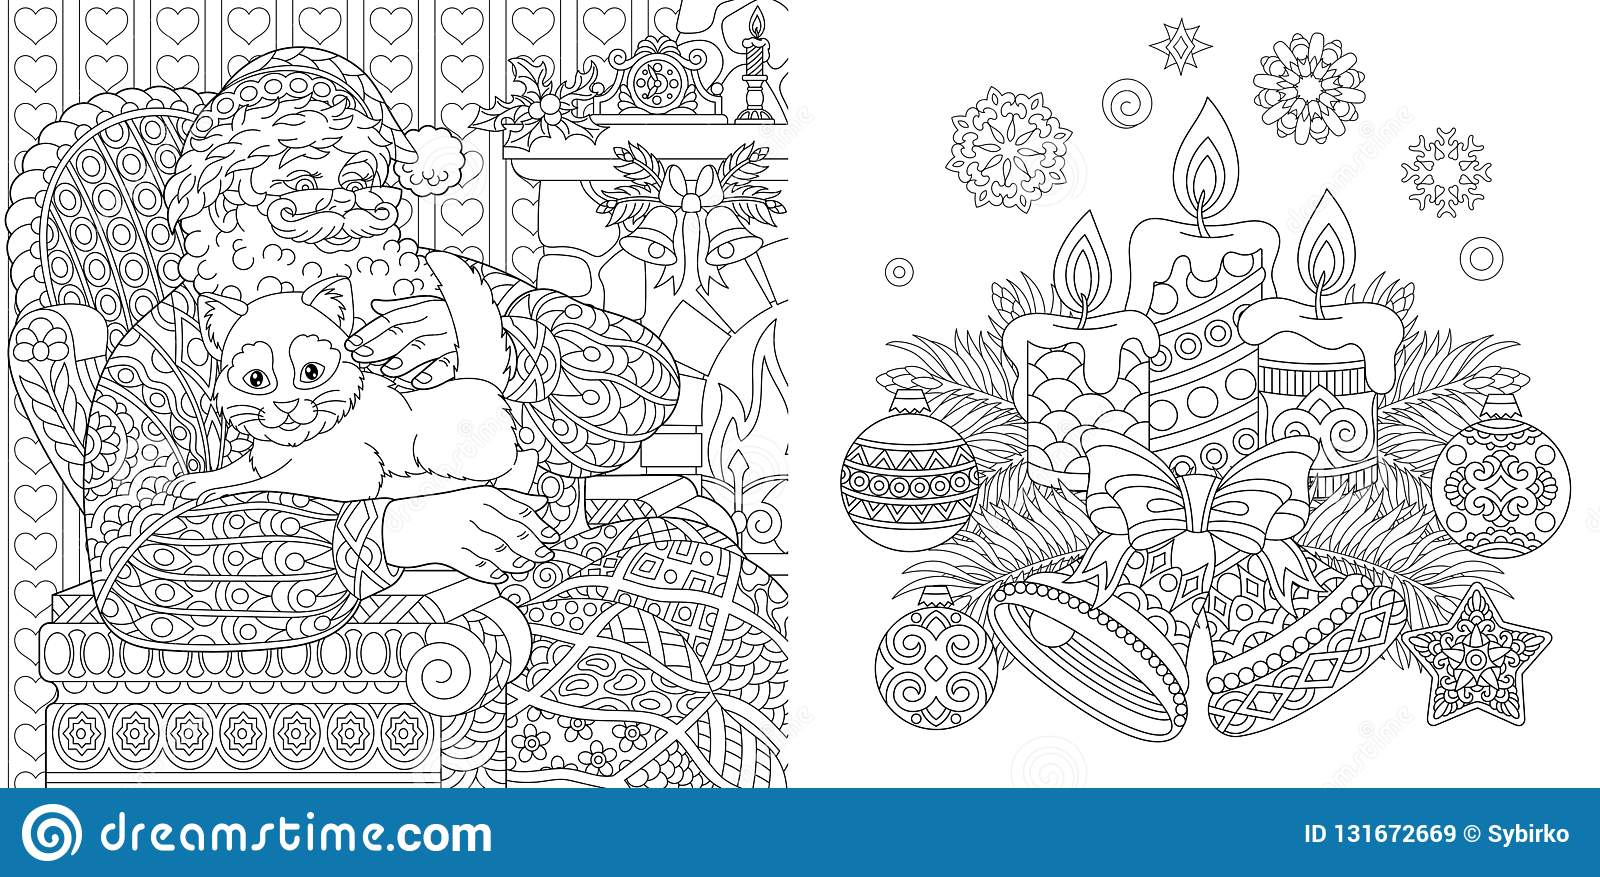 Christmas colouring pages coloring book for adults santa claus with a cat new year background with vintage ornaments